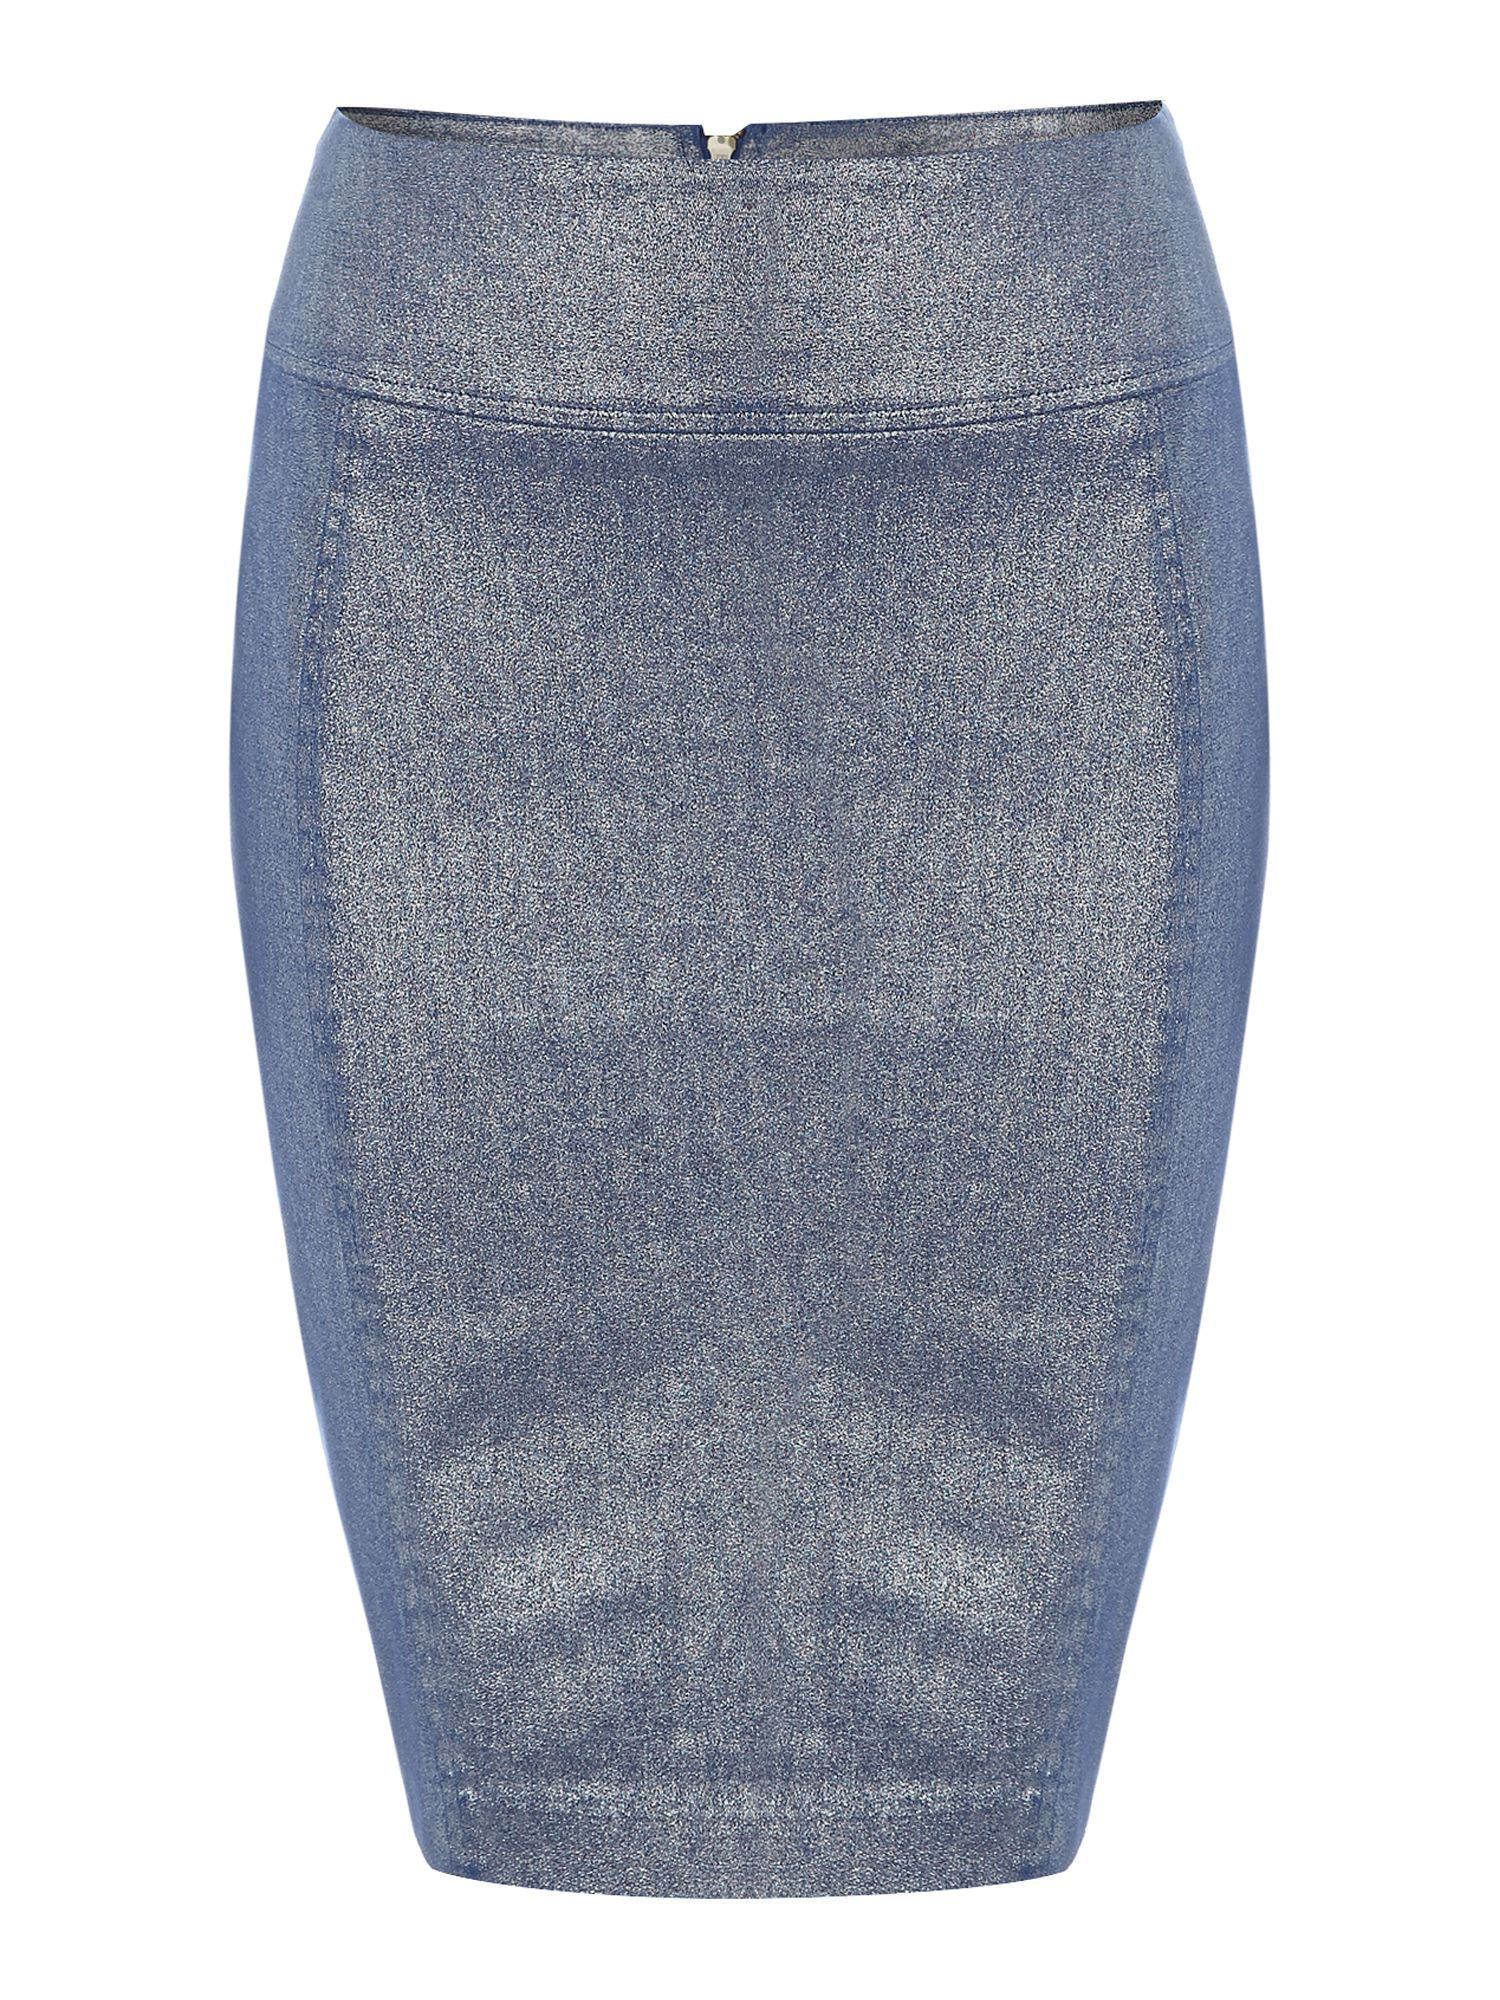 Coated denim pencil skirt with zip up back detail